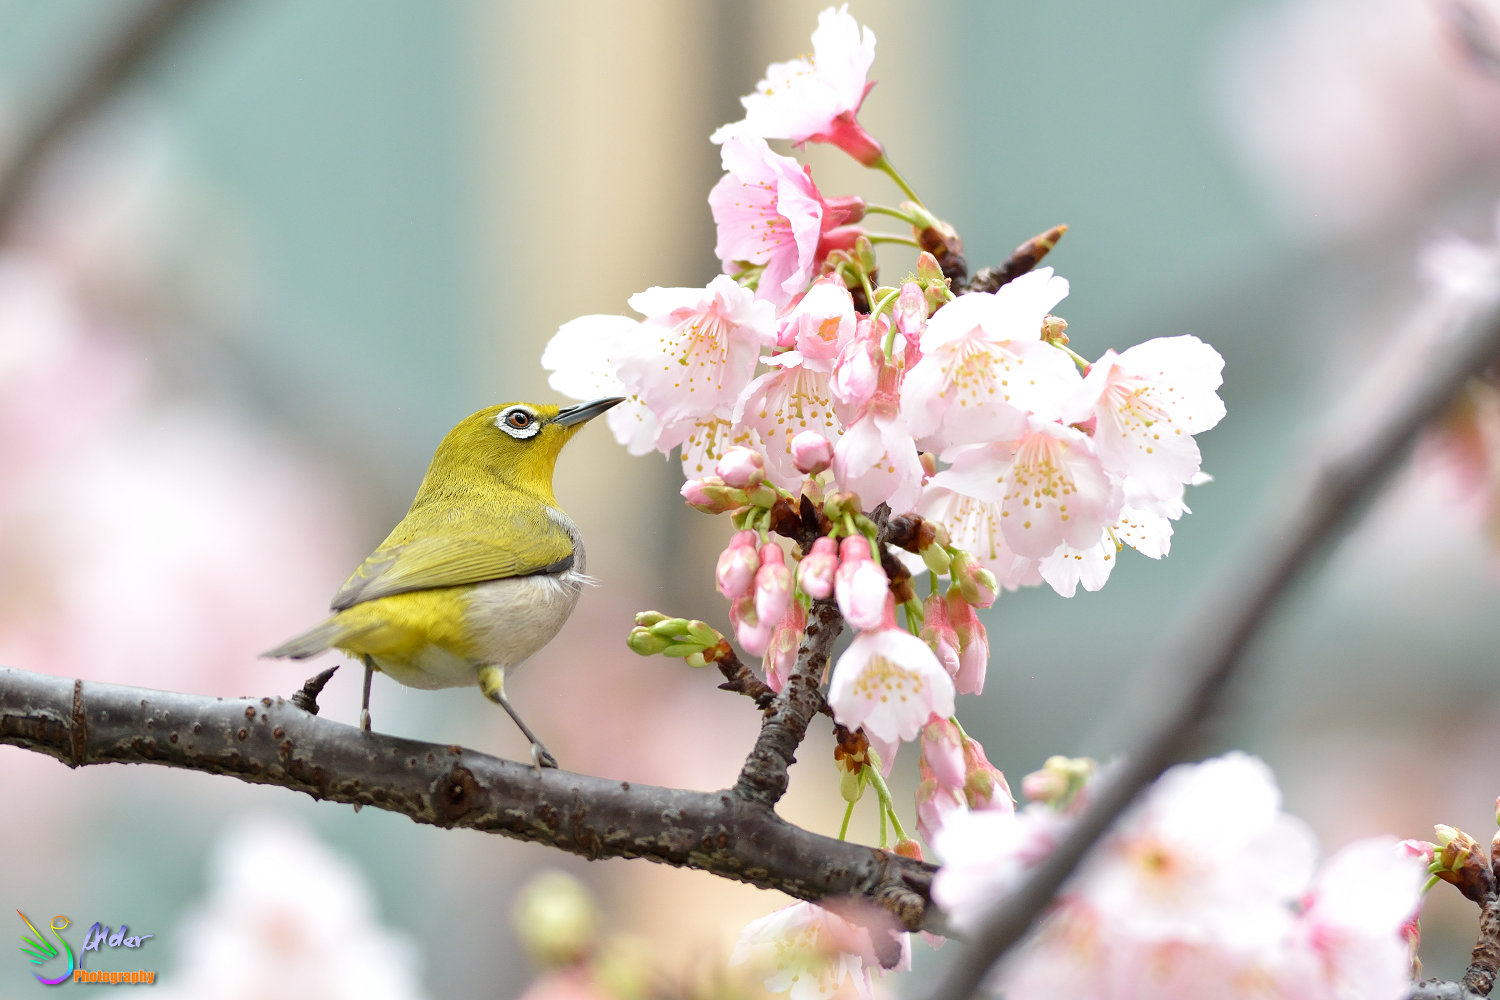 Sakura_White-eye_6528